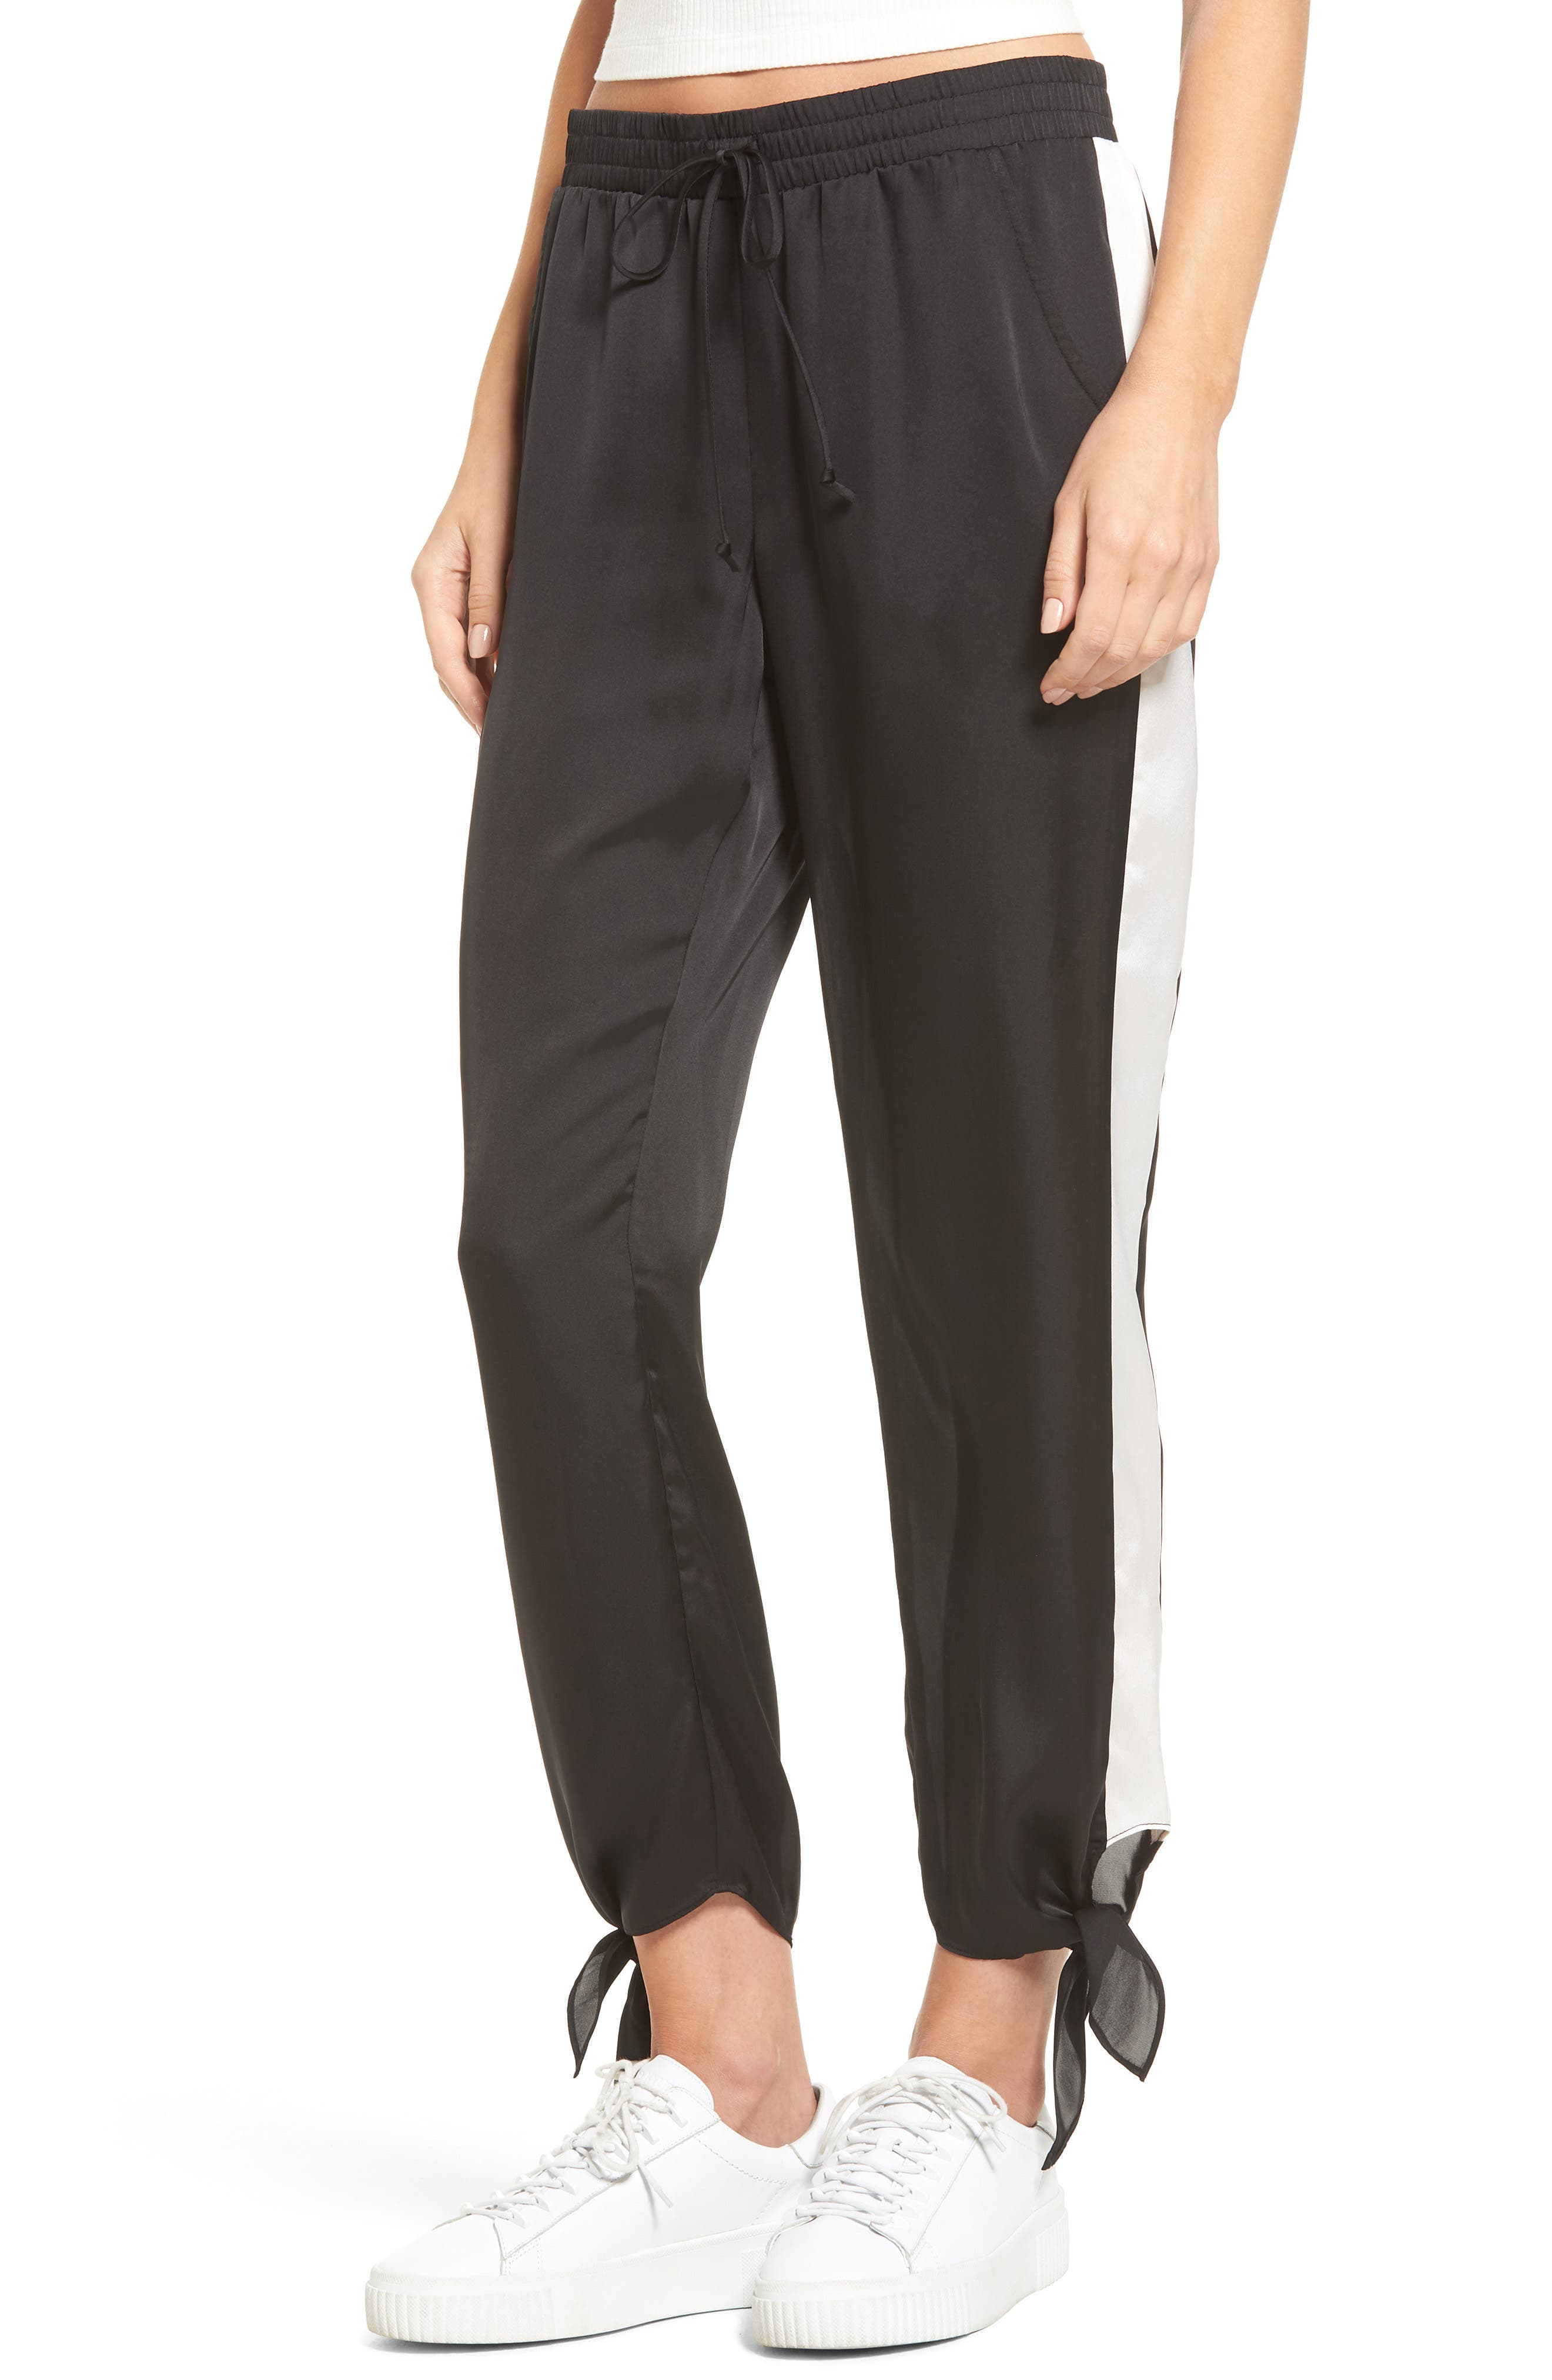 Ankle Tie Track Pants,                         Main,                         color, 001